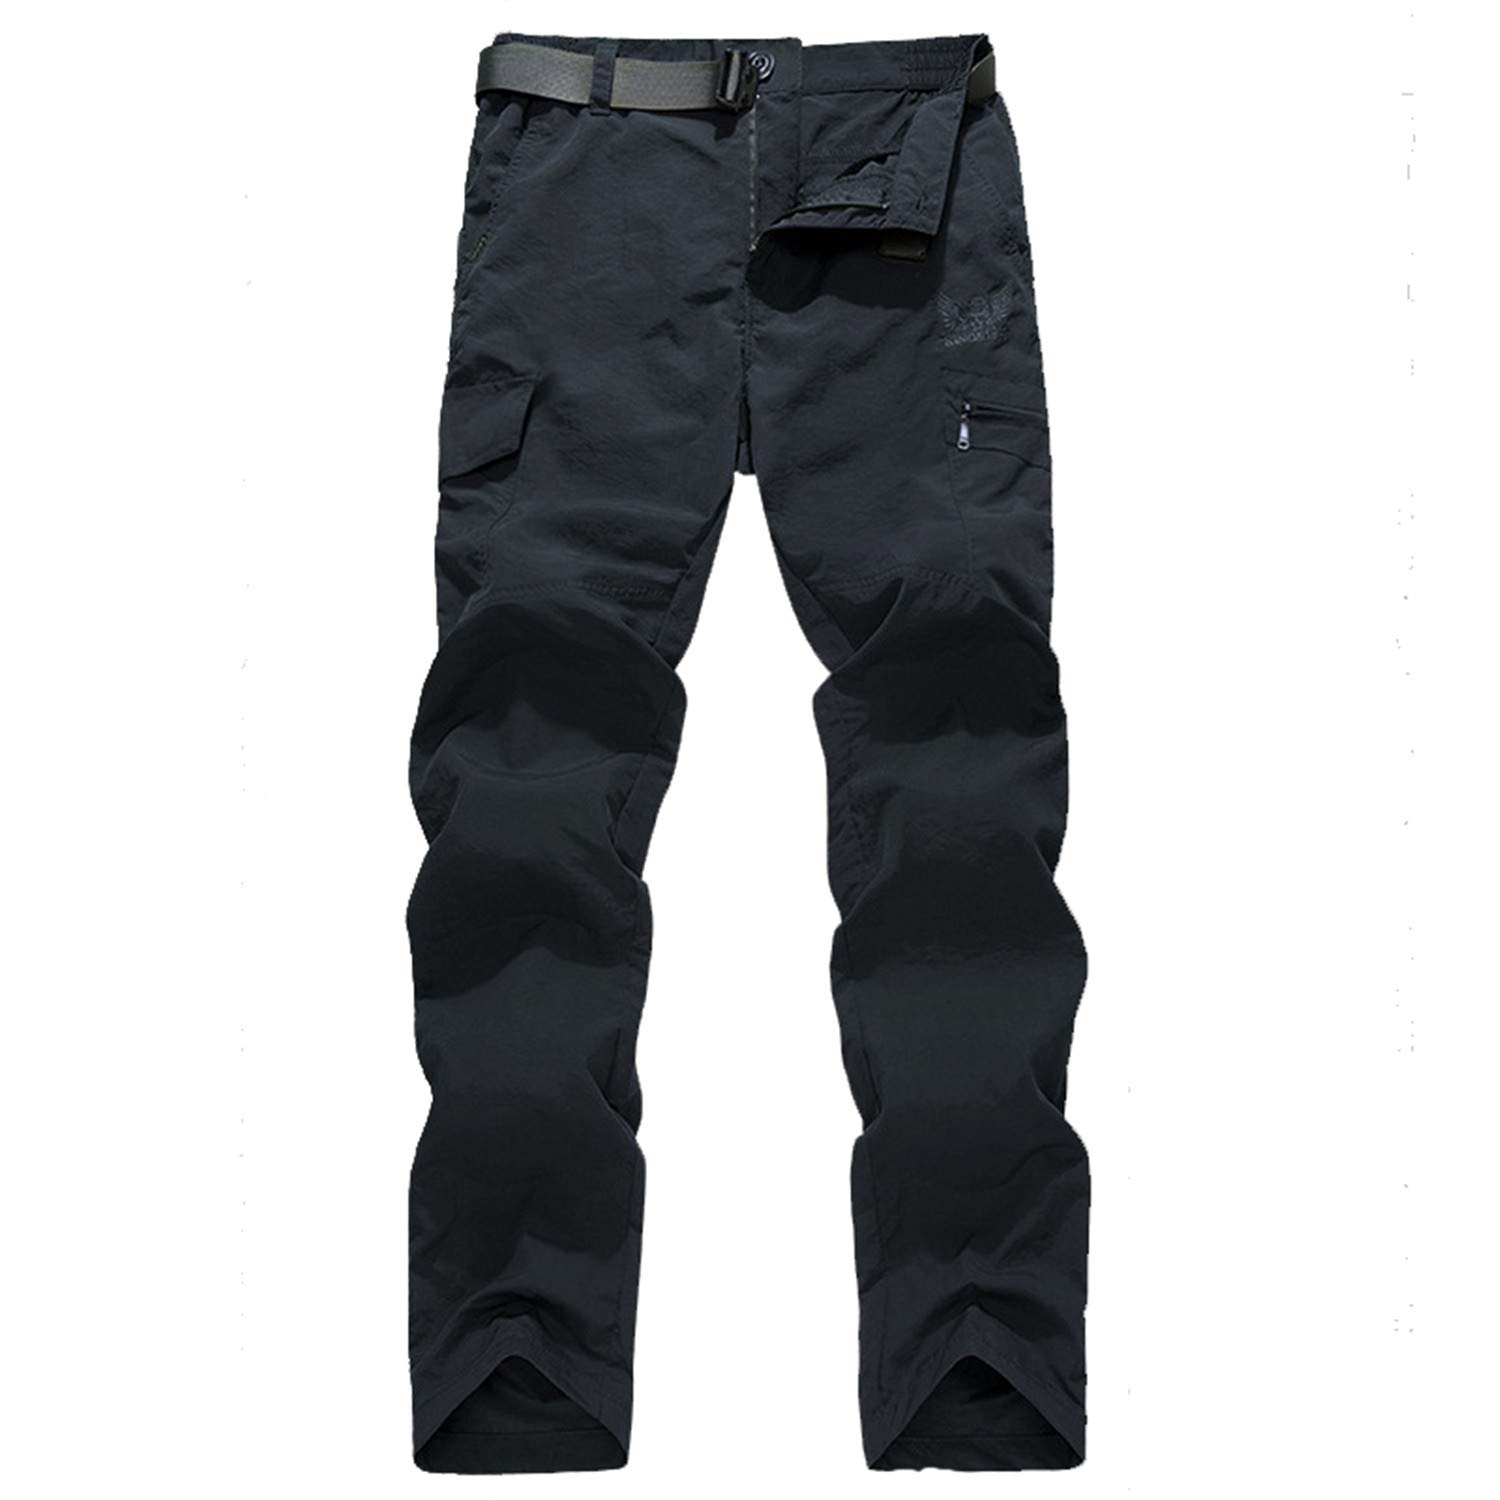 Mens Quick Dry Cargo Pants Army Military Elastic Breathable Trekking Waterproof Joggers